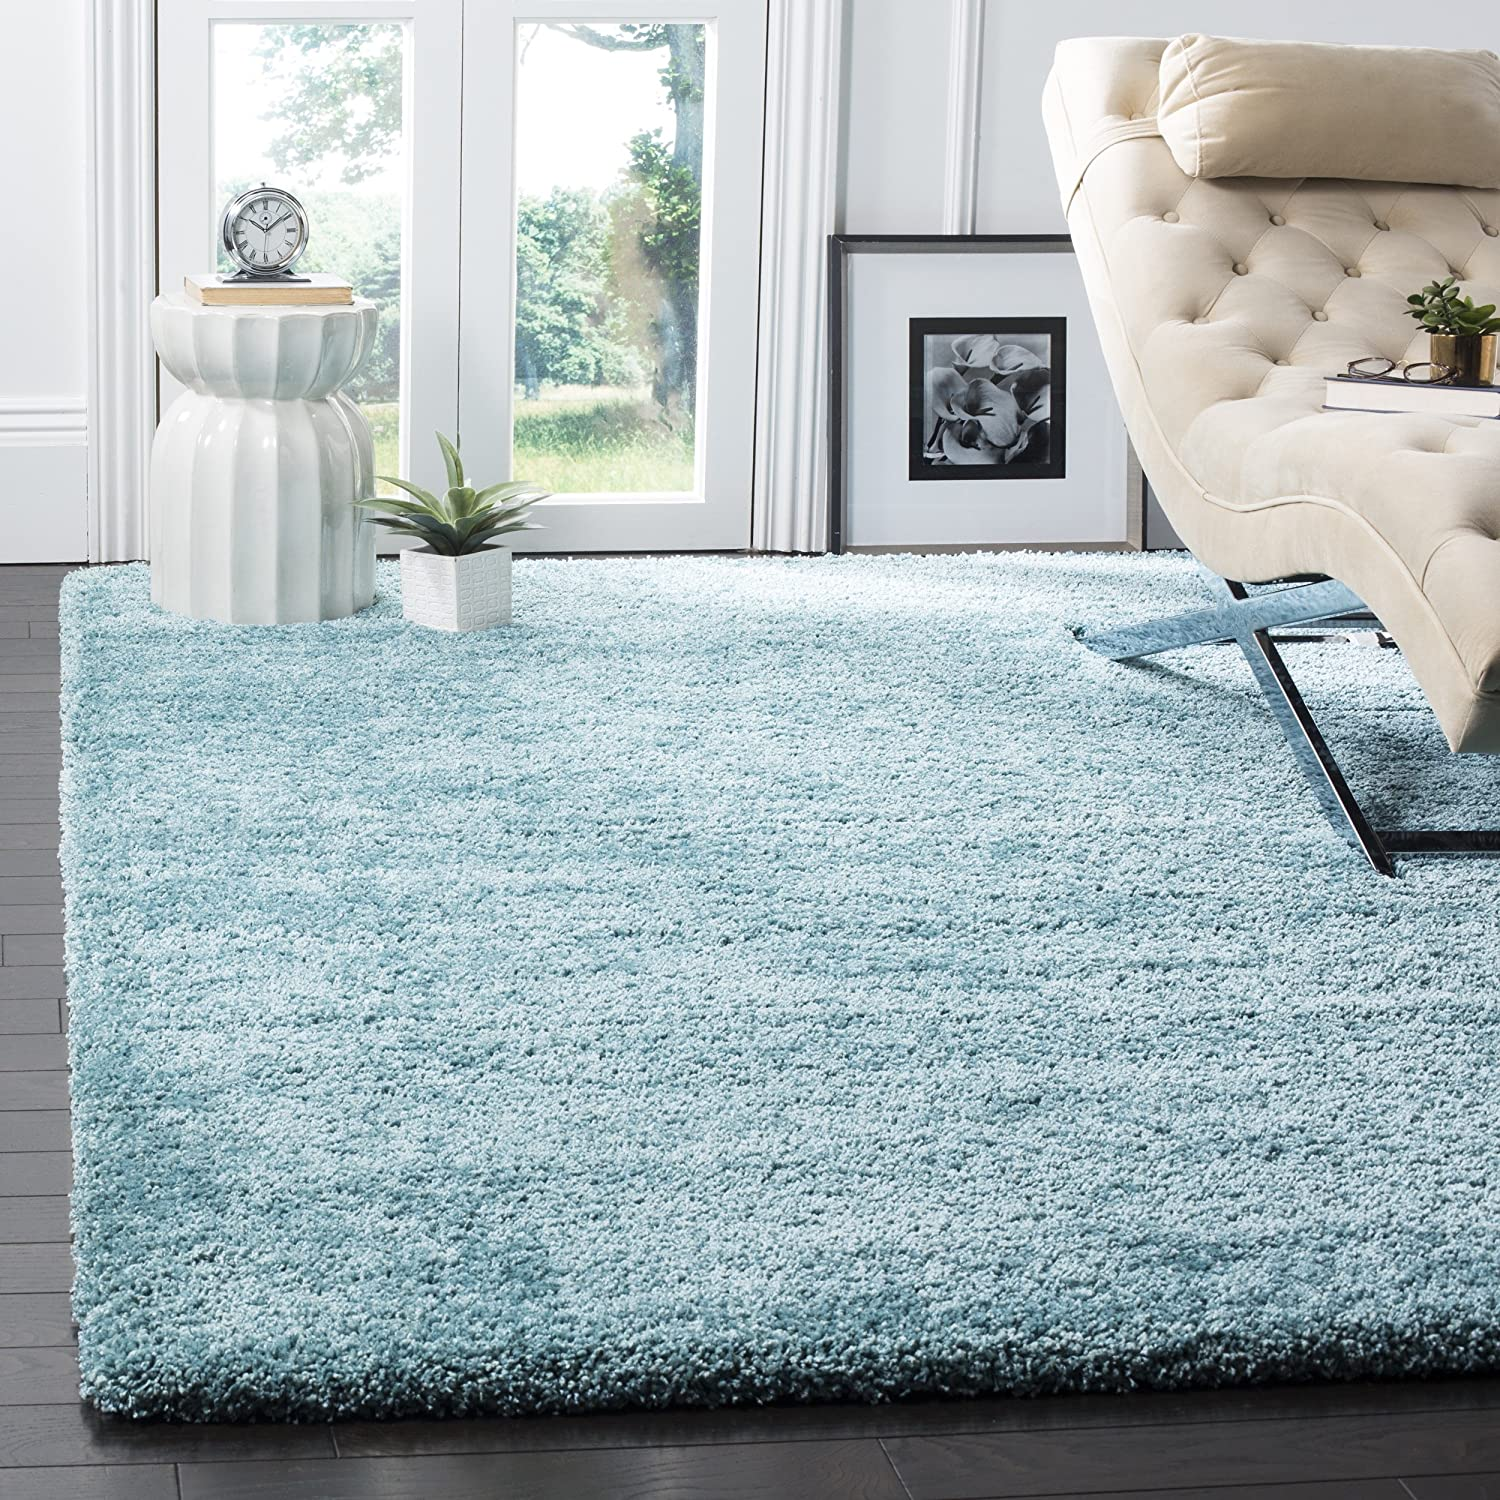 Safavieh Milan Shag Collection SG180-6060 2-inch Thick Area Rug, 7' Square, Aqua Blue